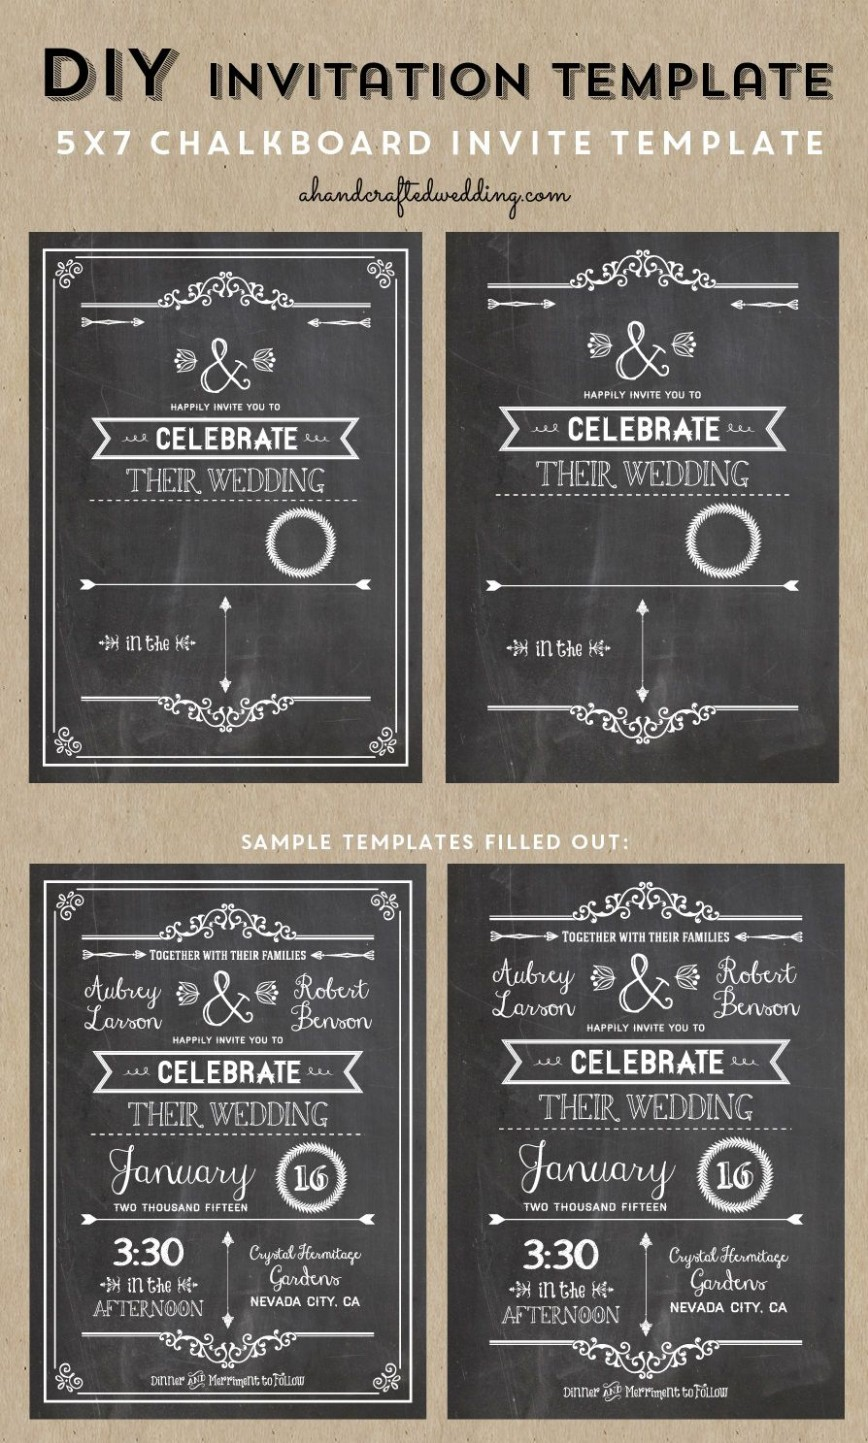 005 Wondrou Chalkboard Invitation Template Free Picture  Download Birthday868